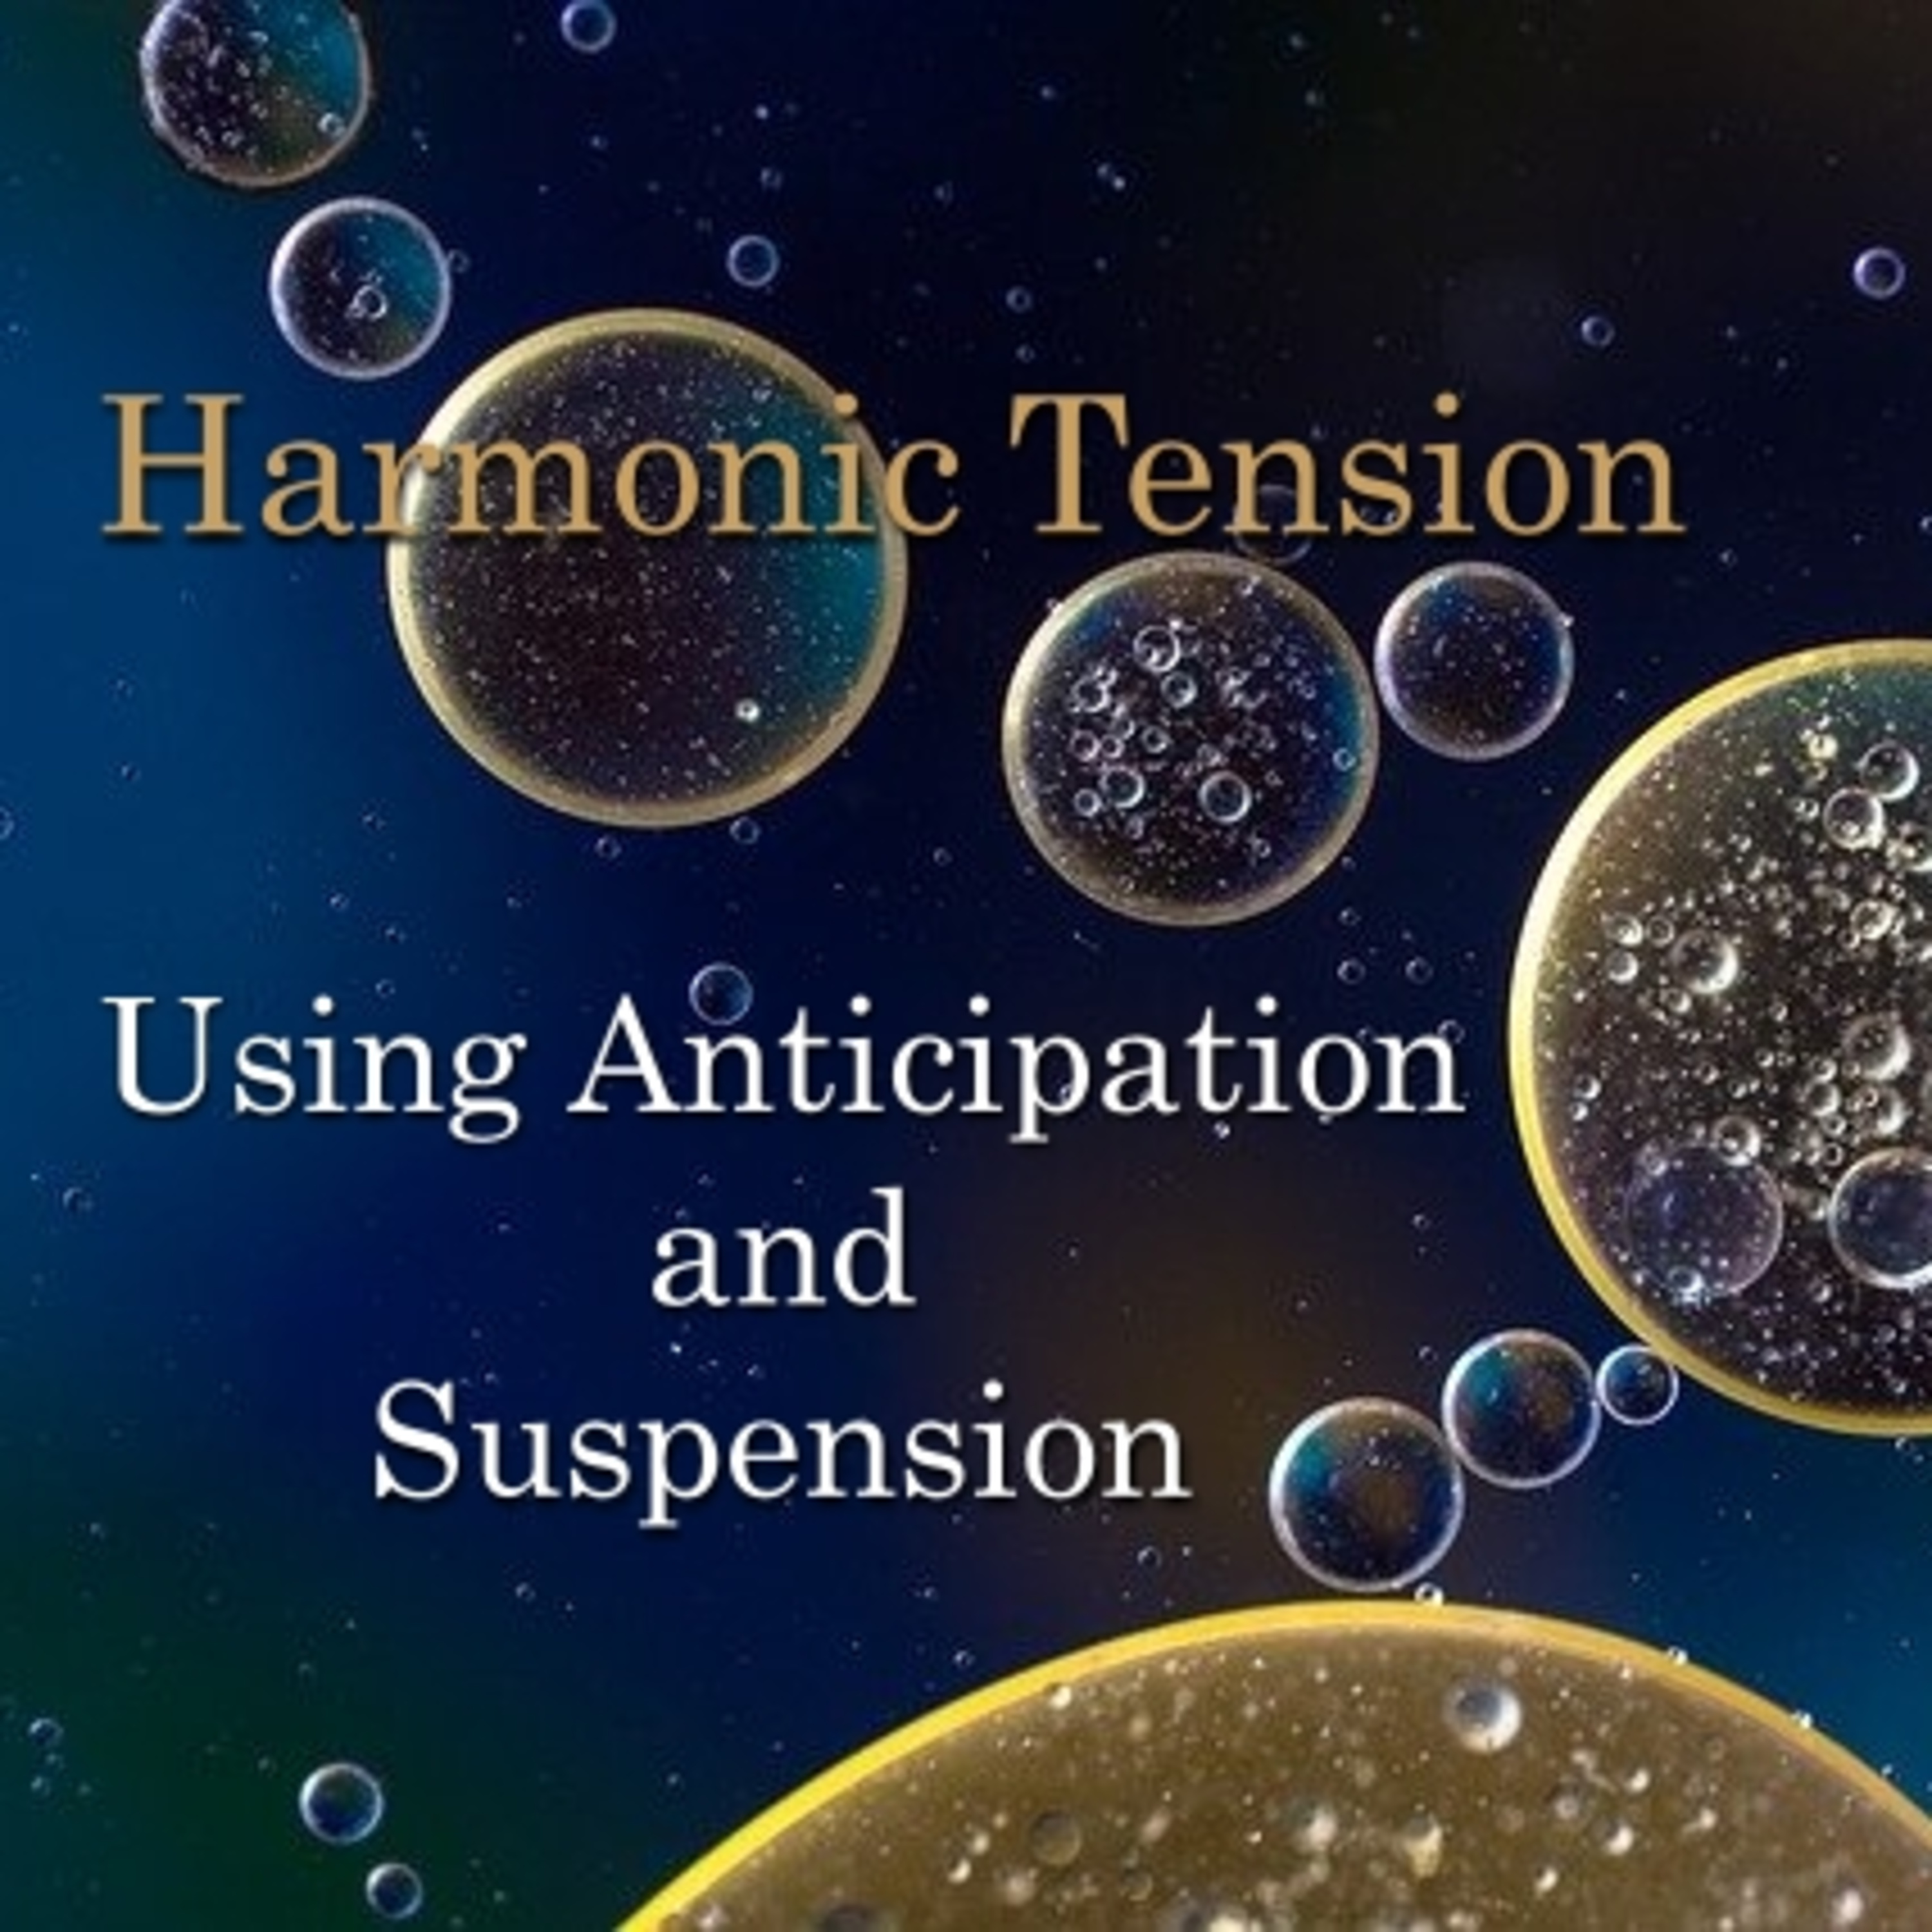 Creating Harmonic Tension With Anticipation and Suspension